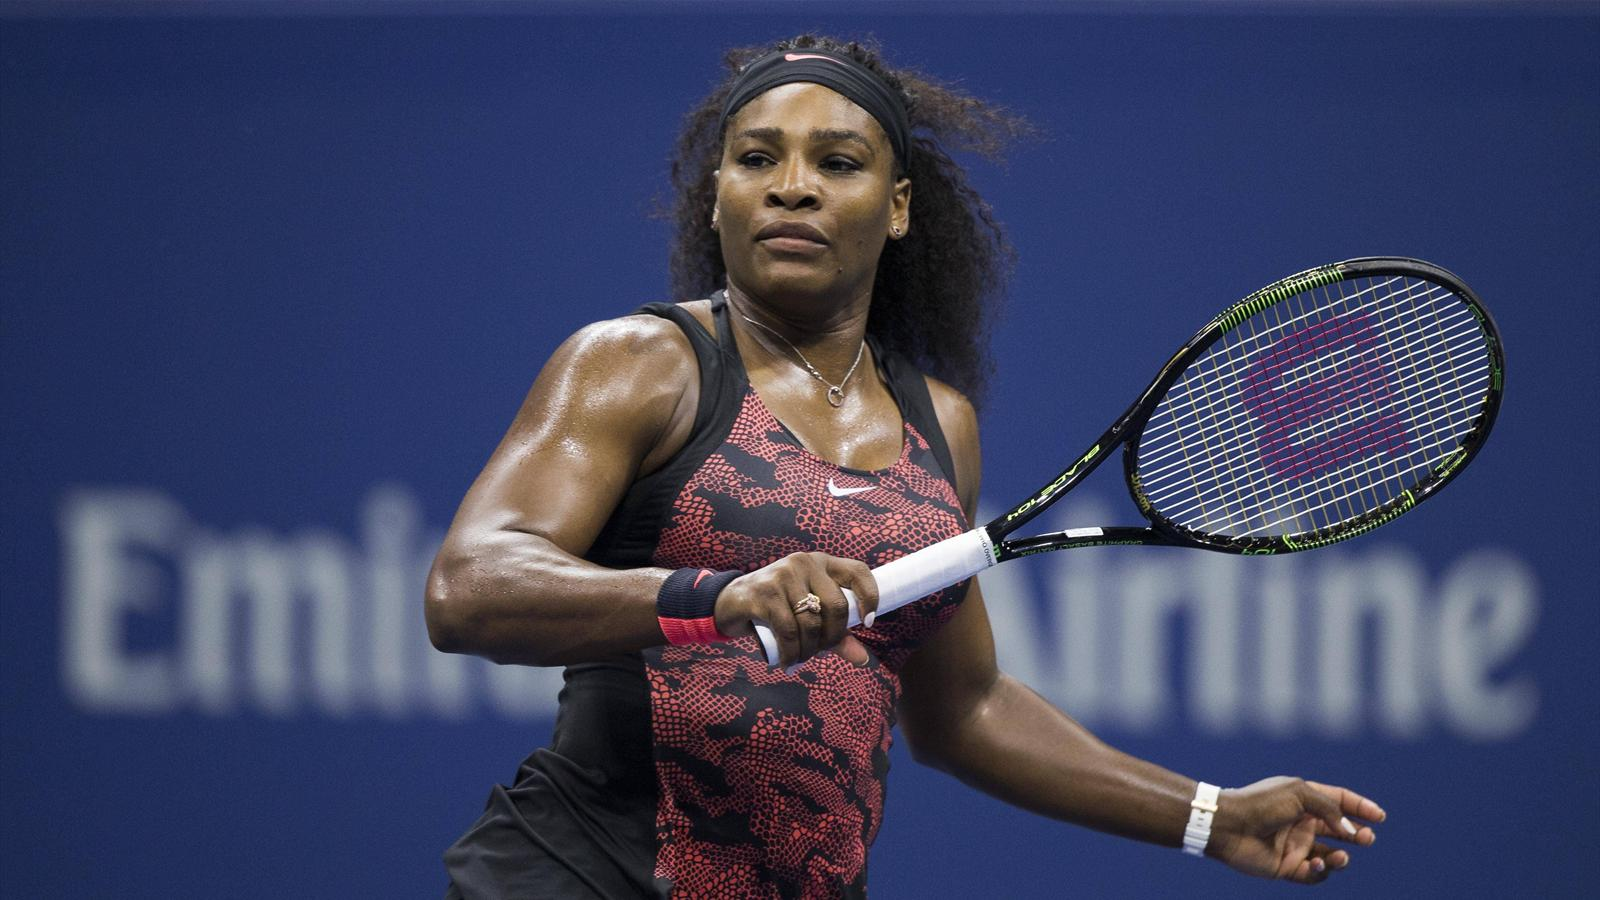 Serena Williams stapelt im Halbfinale der US Open tief